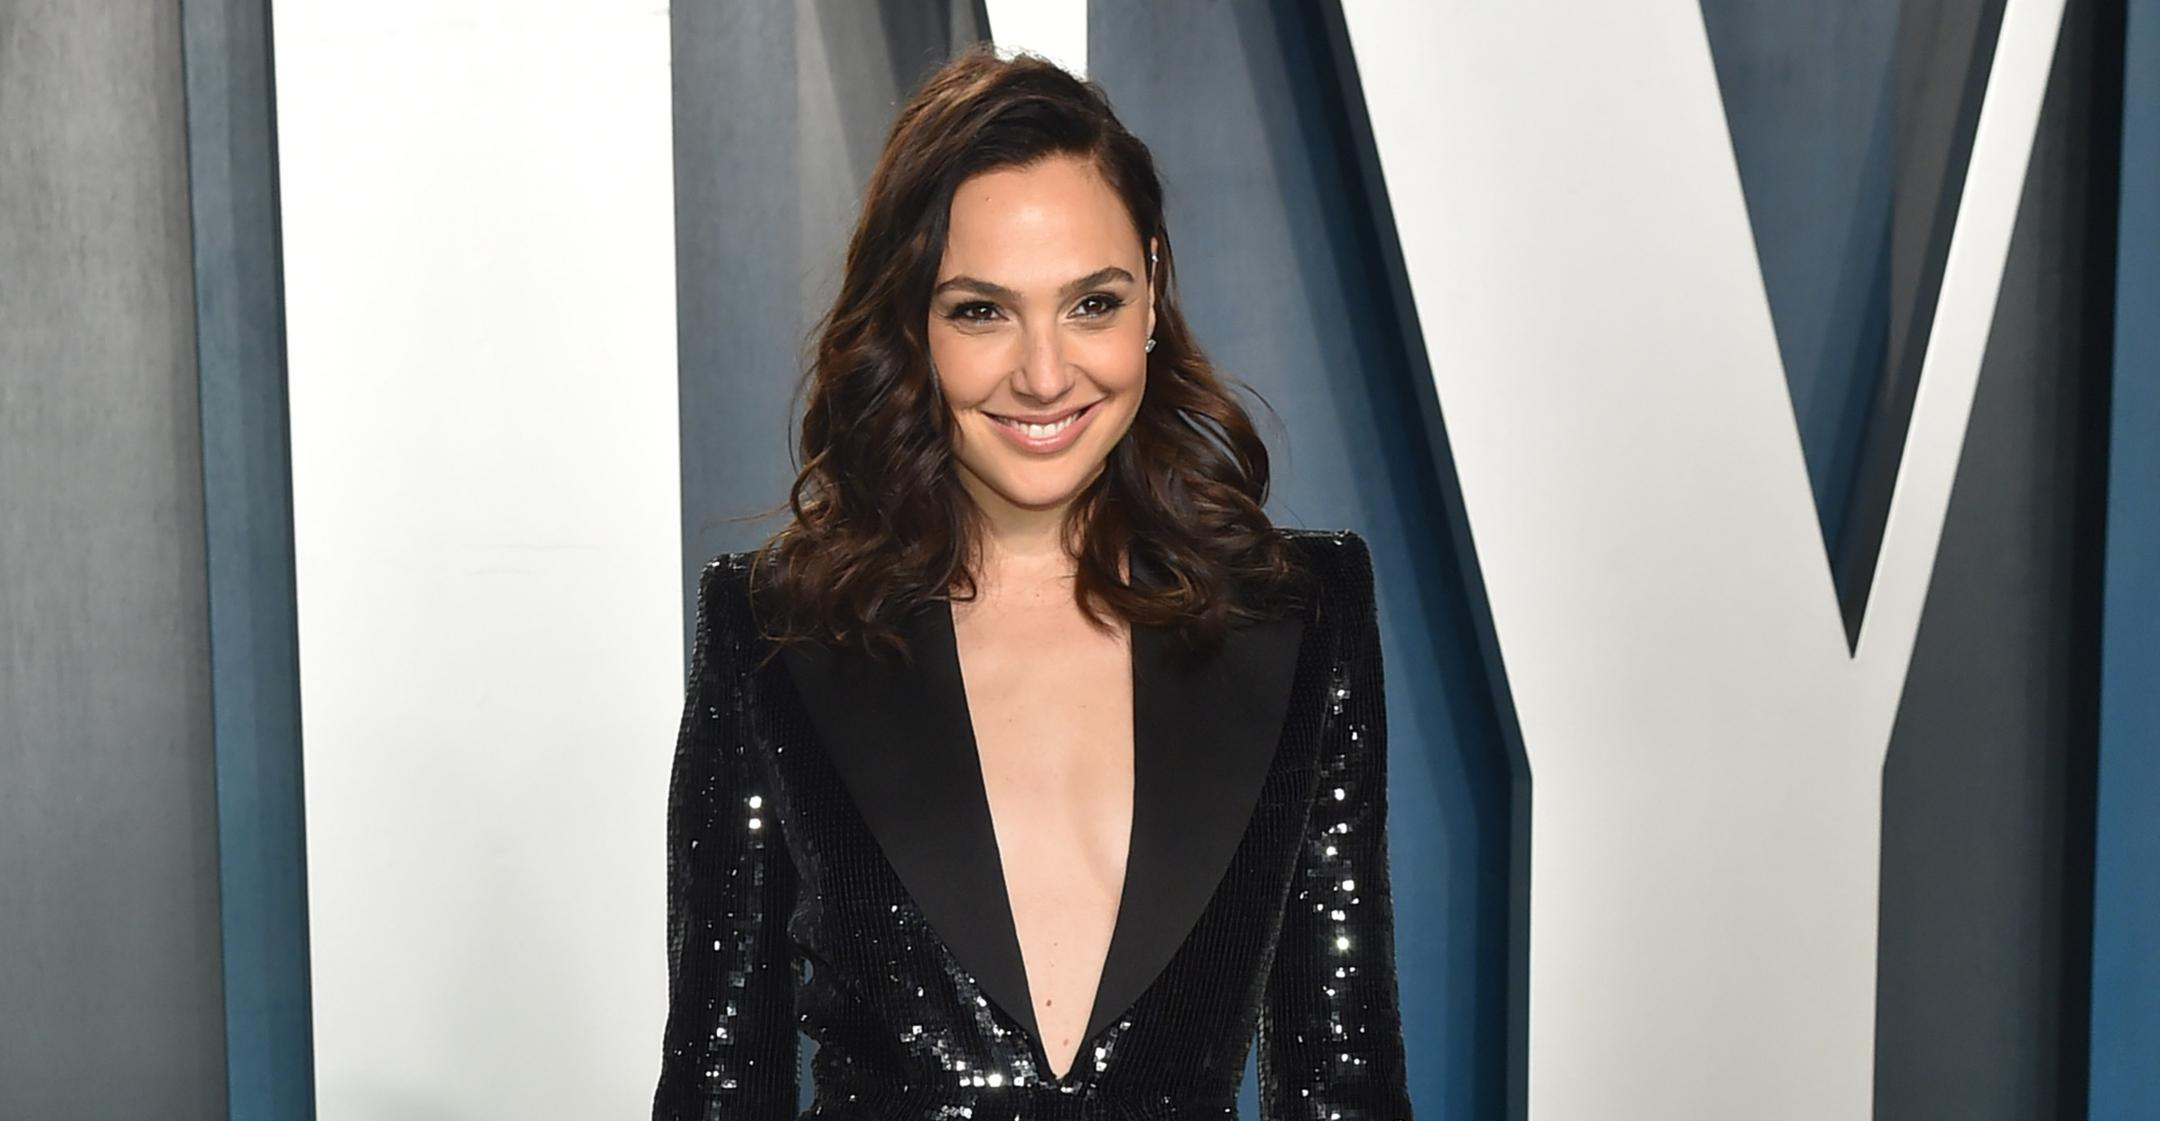 meditation and mediterranean diet are keys to helping gal gadot feel her best